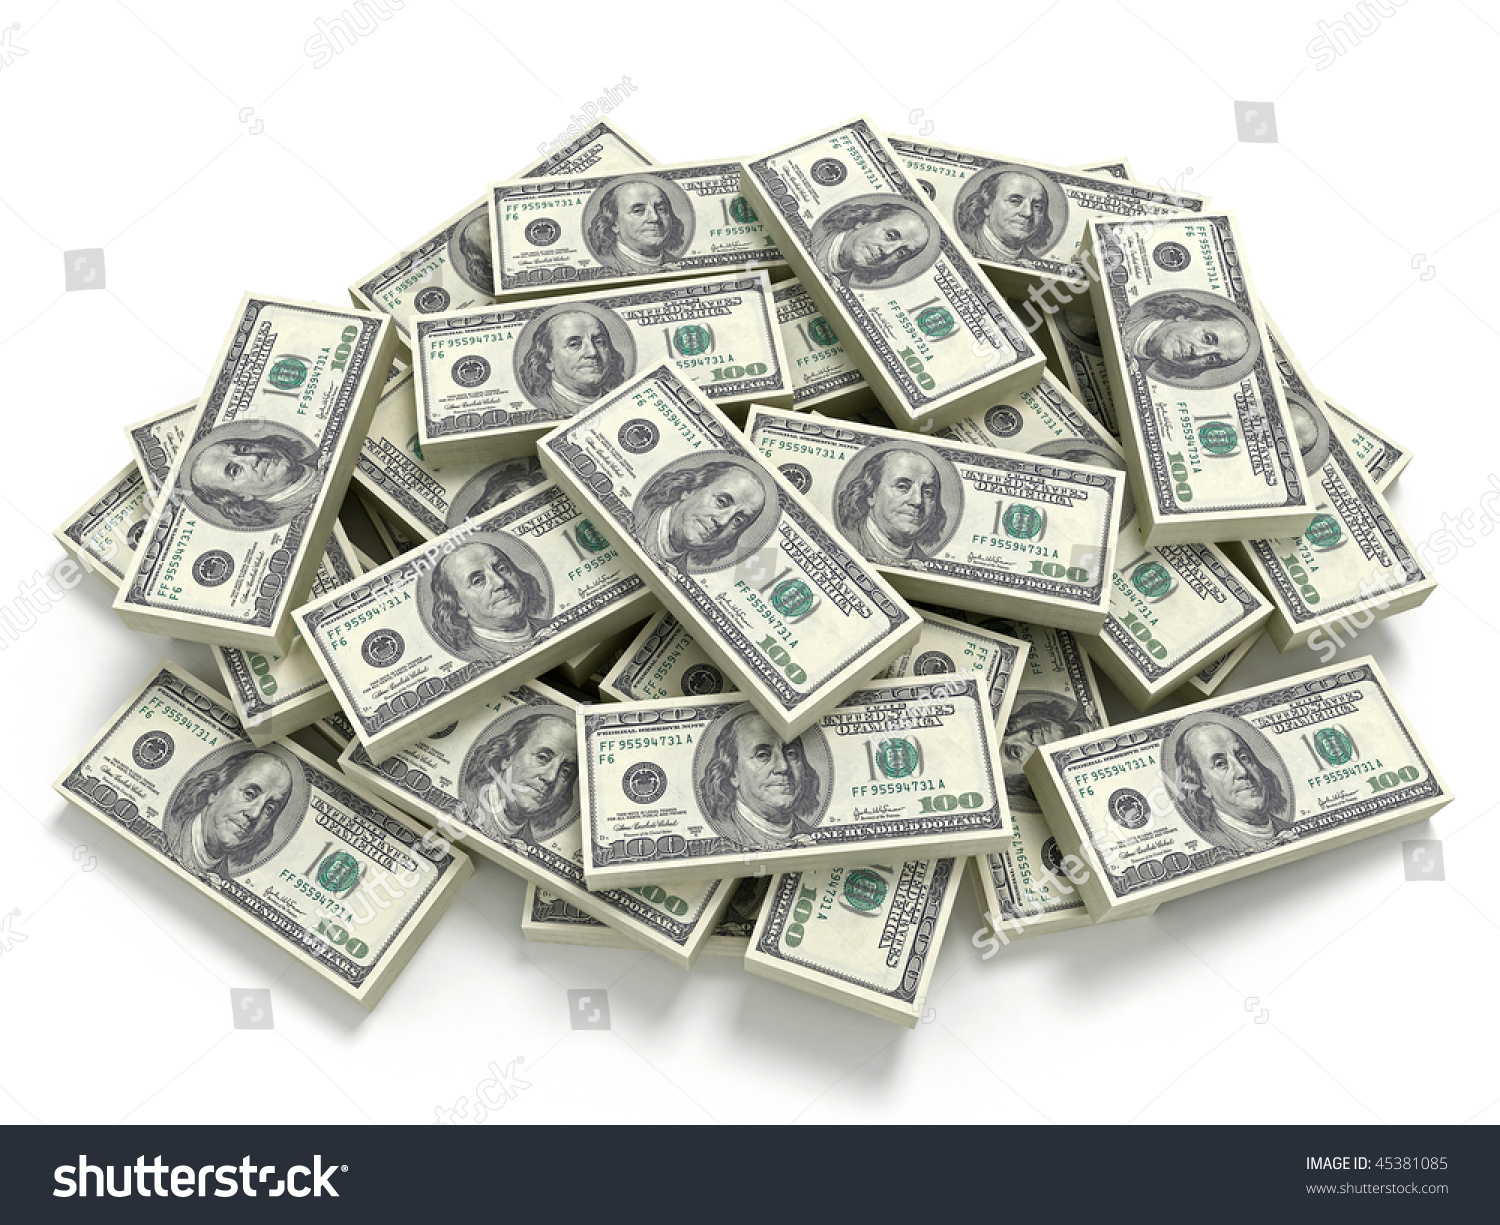 Featured Posts of Millionaires Giving Money